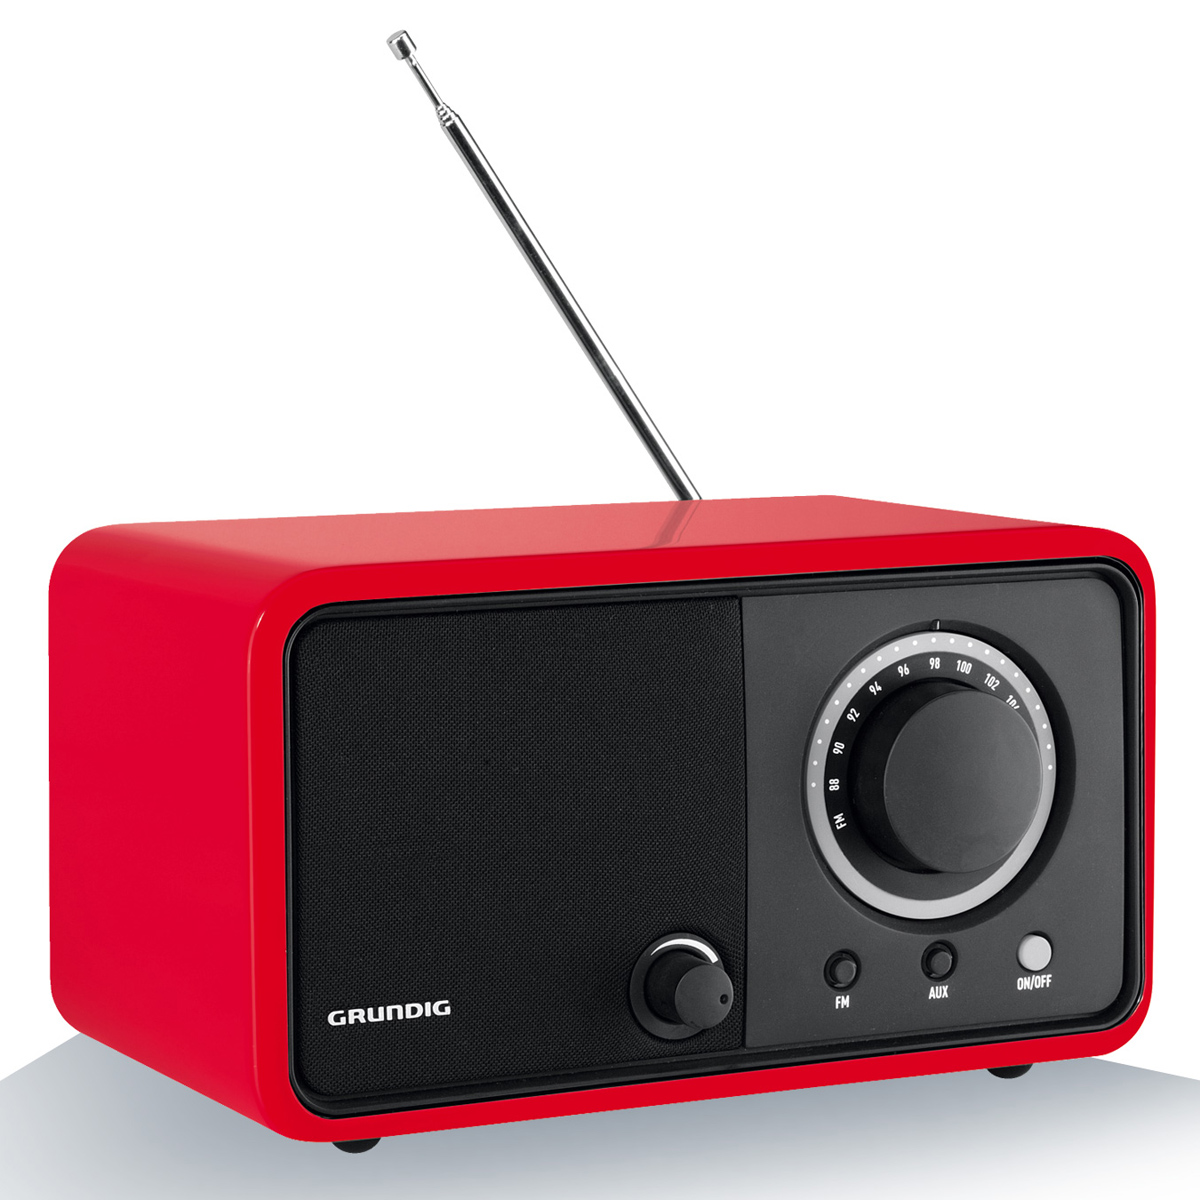 grundig tr 1200 rouge radio radio r veil grundig sur ldlc. Black Bedroom Furniture Sets. Home Design Ideas